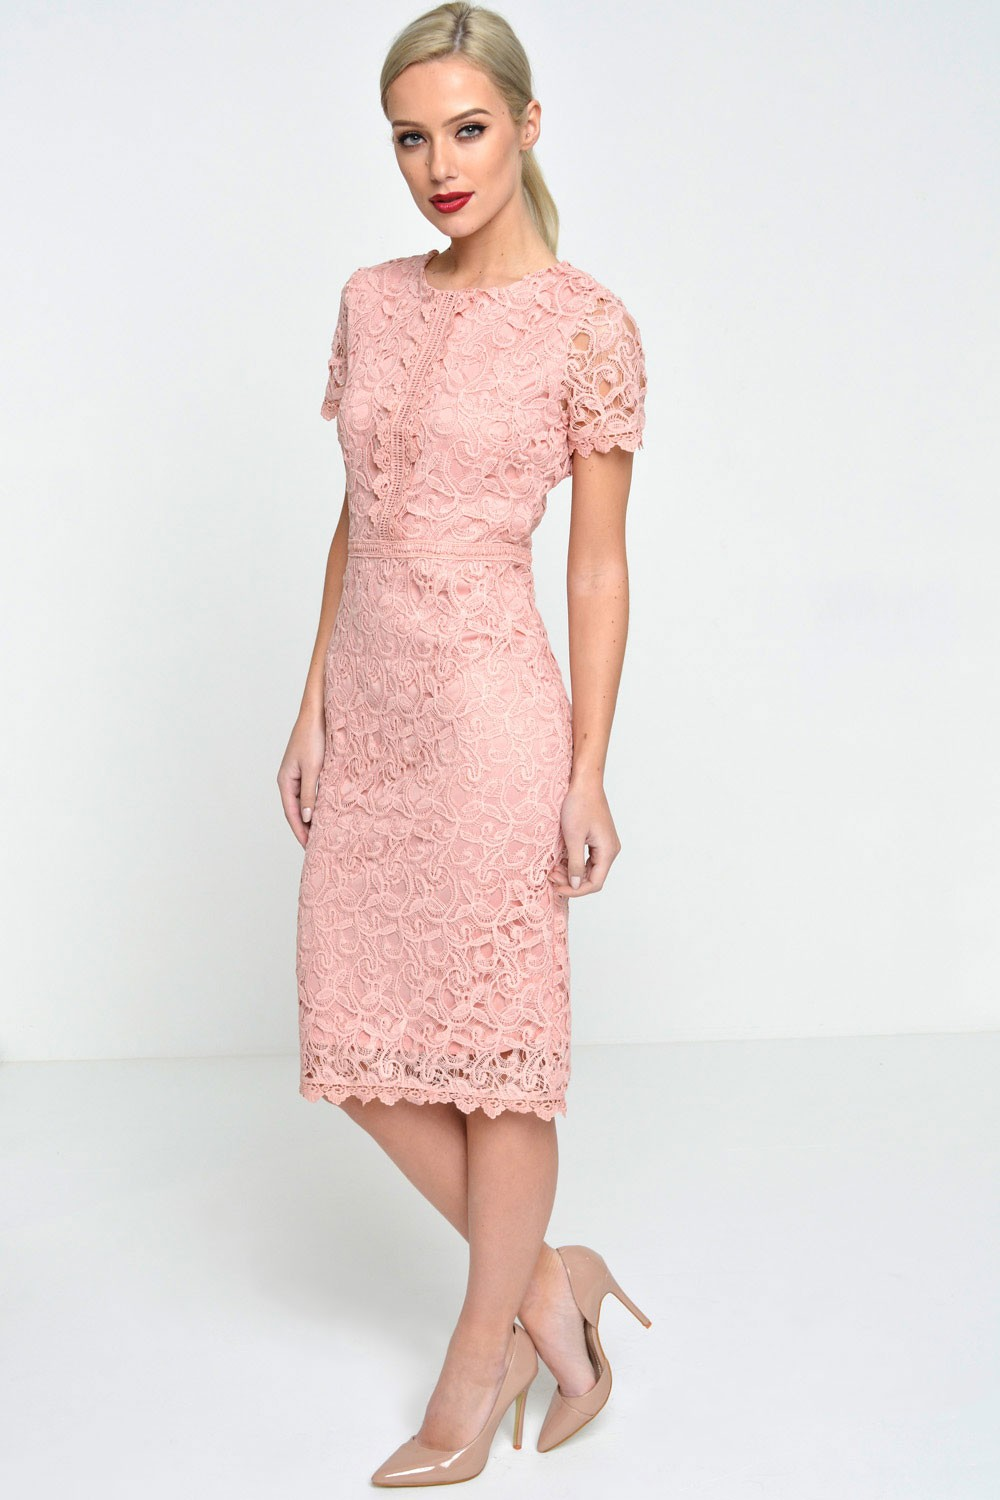 Share Allure Midi Dress in Dusty Pink on Pinterest (opens in a new window) Share Allure Midi Dress in Dusty Pink on Google (opens in a new window) Allure Midi Dress Nookie Nookie $ Or 4 installments of $ by afterpay.